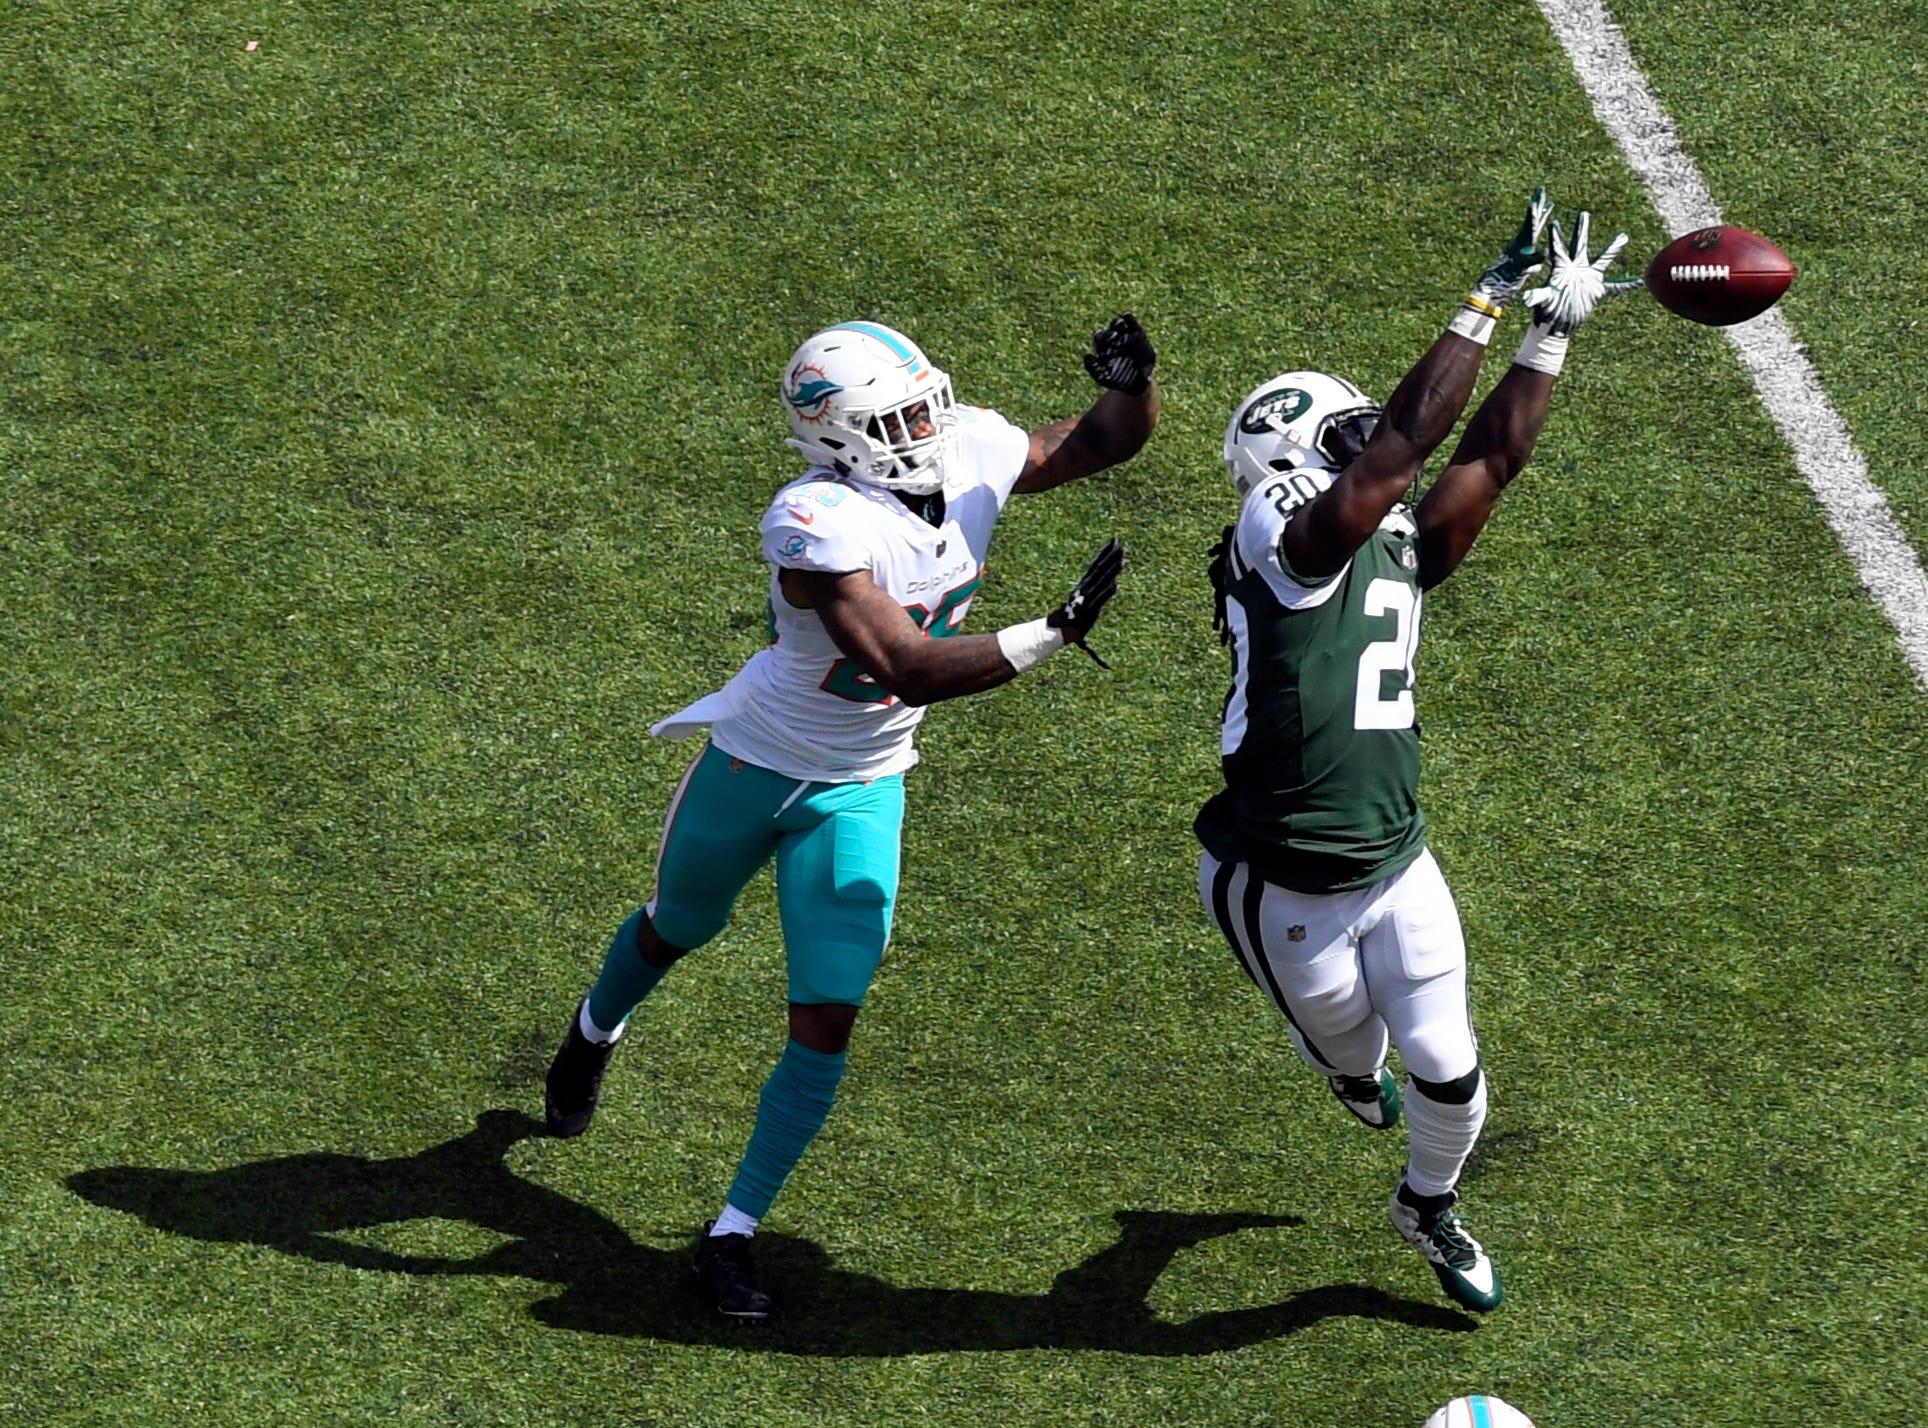 New York Jets running back Isaiah Crowell (20) reaches up for the ball but cannot complete a pass with pressure from Miami Dolphins cornerback Xavien Howard (25). The New York Jets lose to the Miami Dolphins 20-12 in Week 2 at MetLife Stadium in East Rutherford, NJ on Sunday, September 16, 2018.